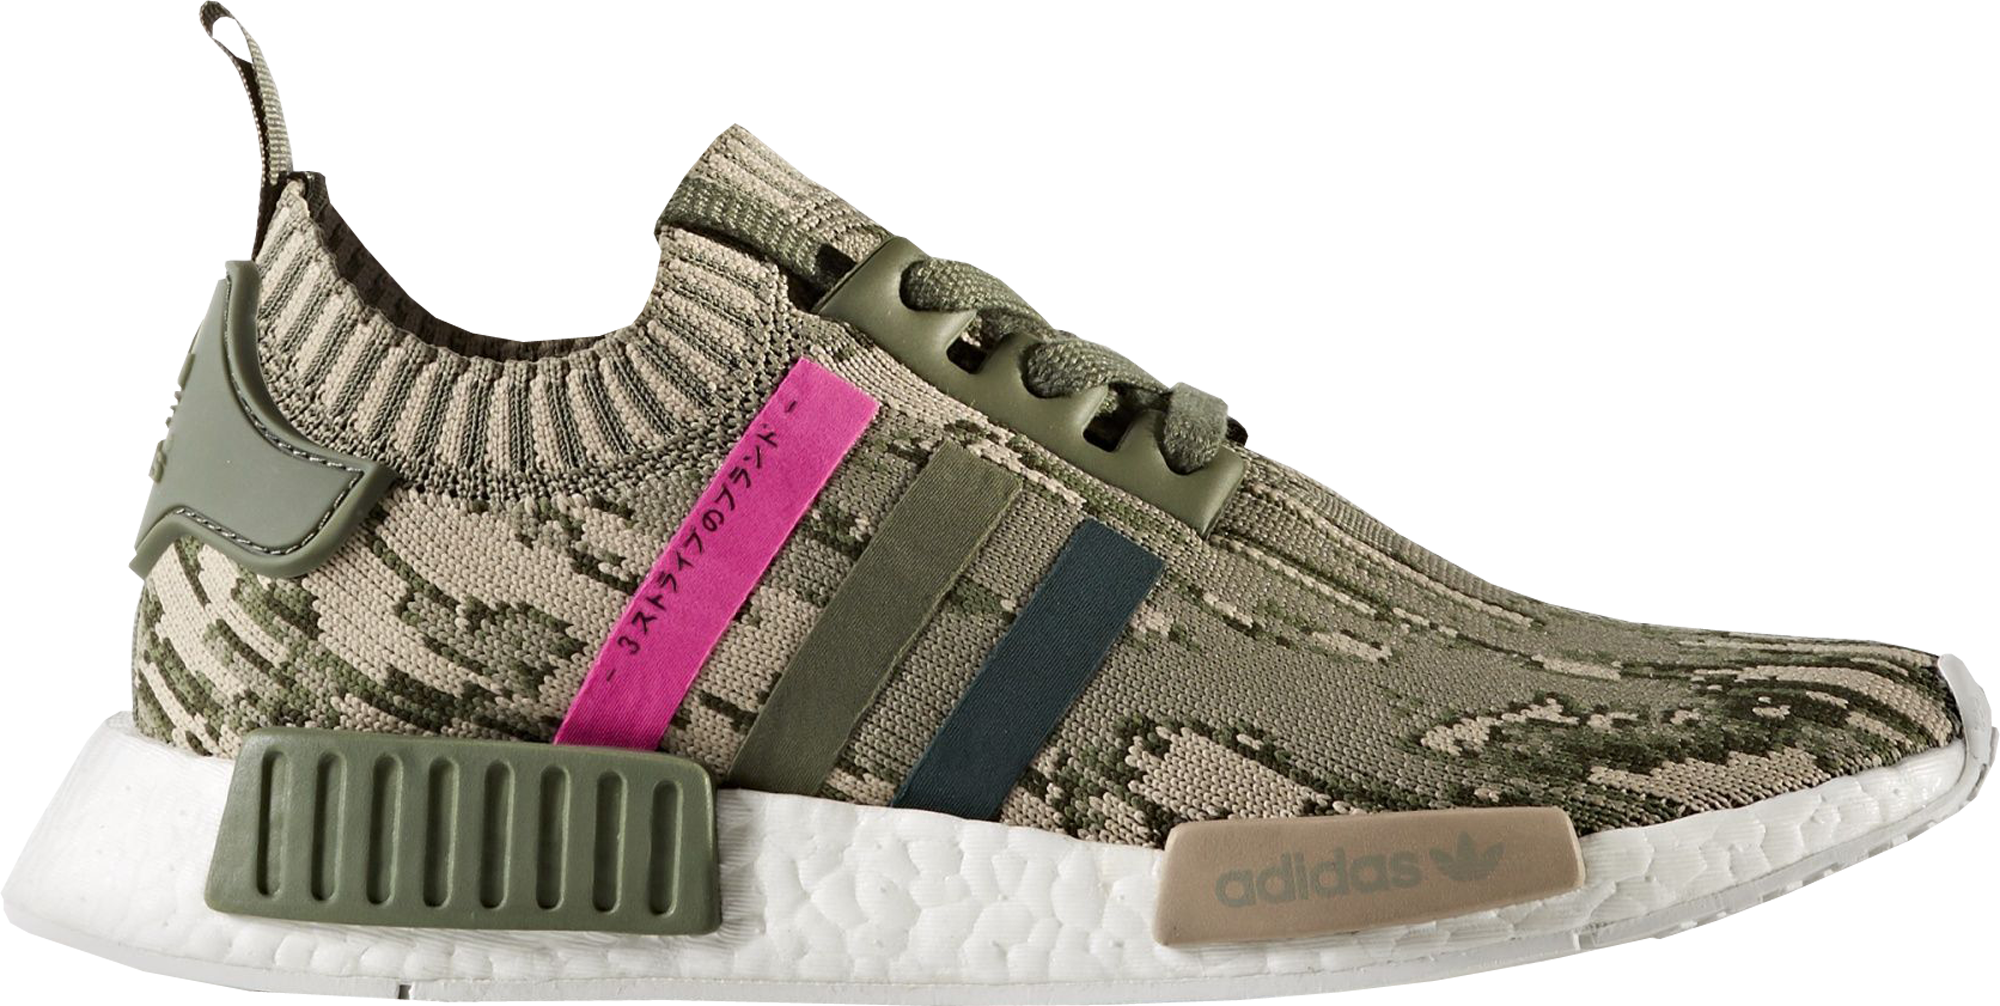 adidas NMD R1 Glitch Camo St Major (W)